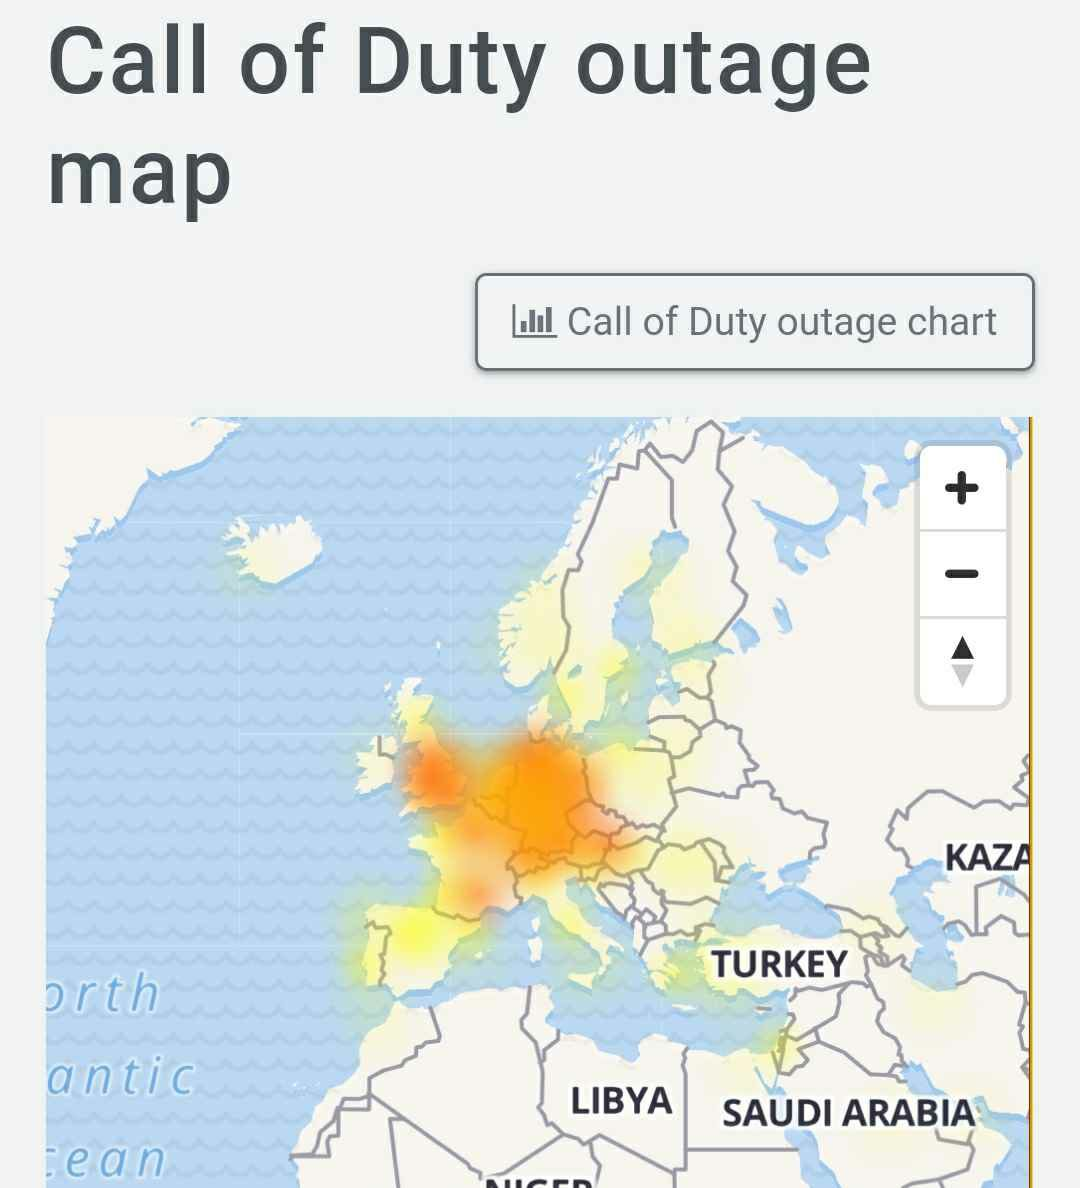 Call of Duty servers down